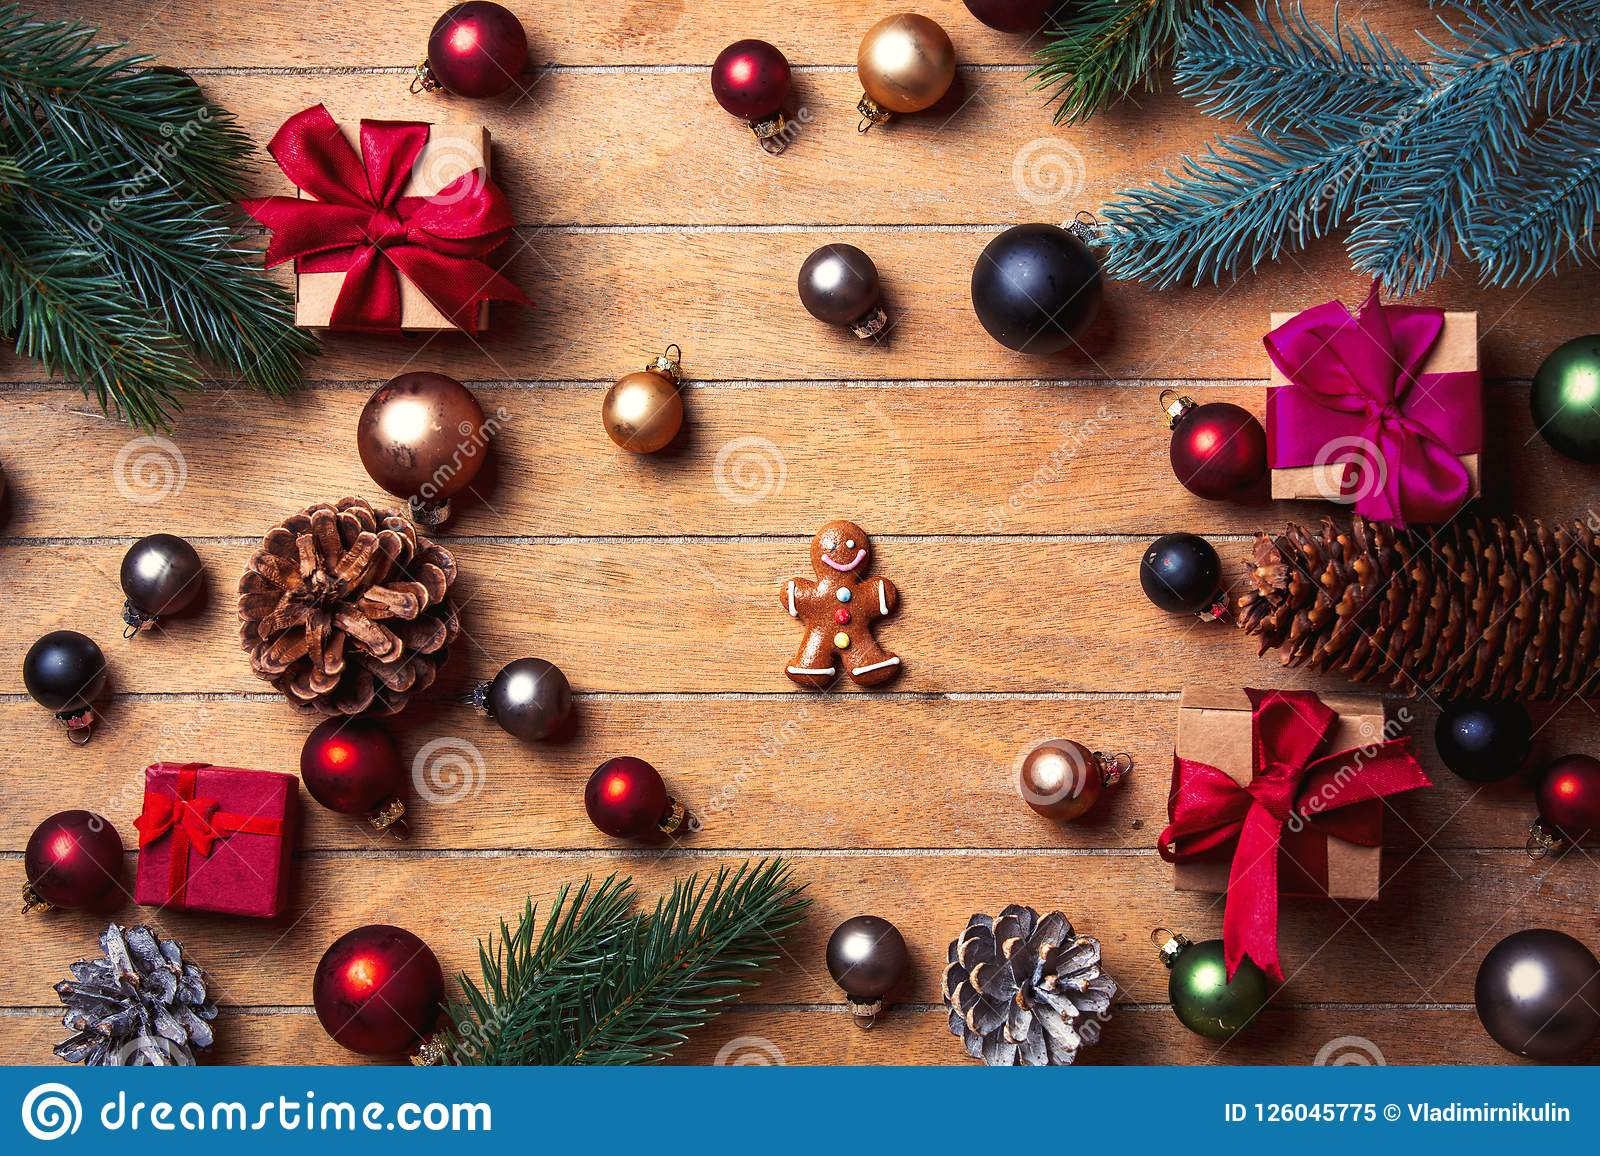 download gingerbread man with christmas decoration stock image image of pine celebration 126045775